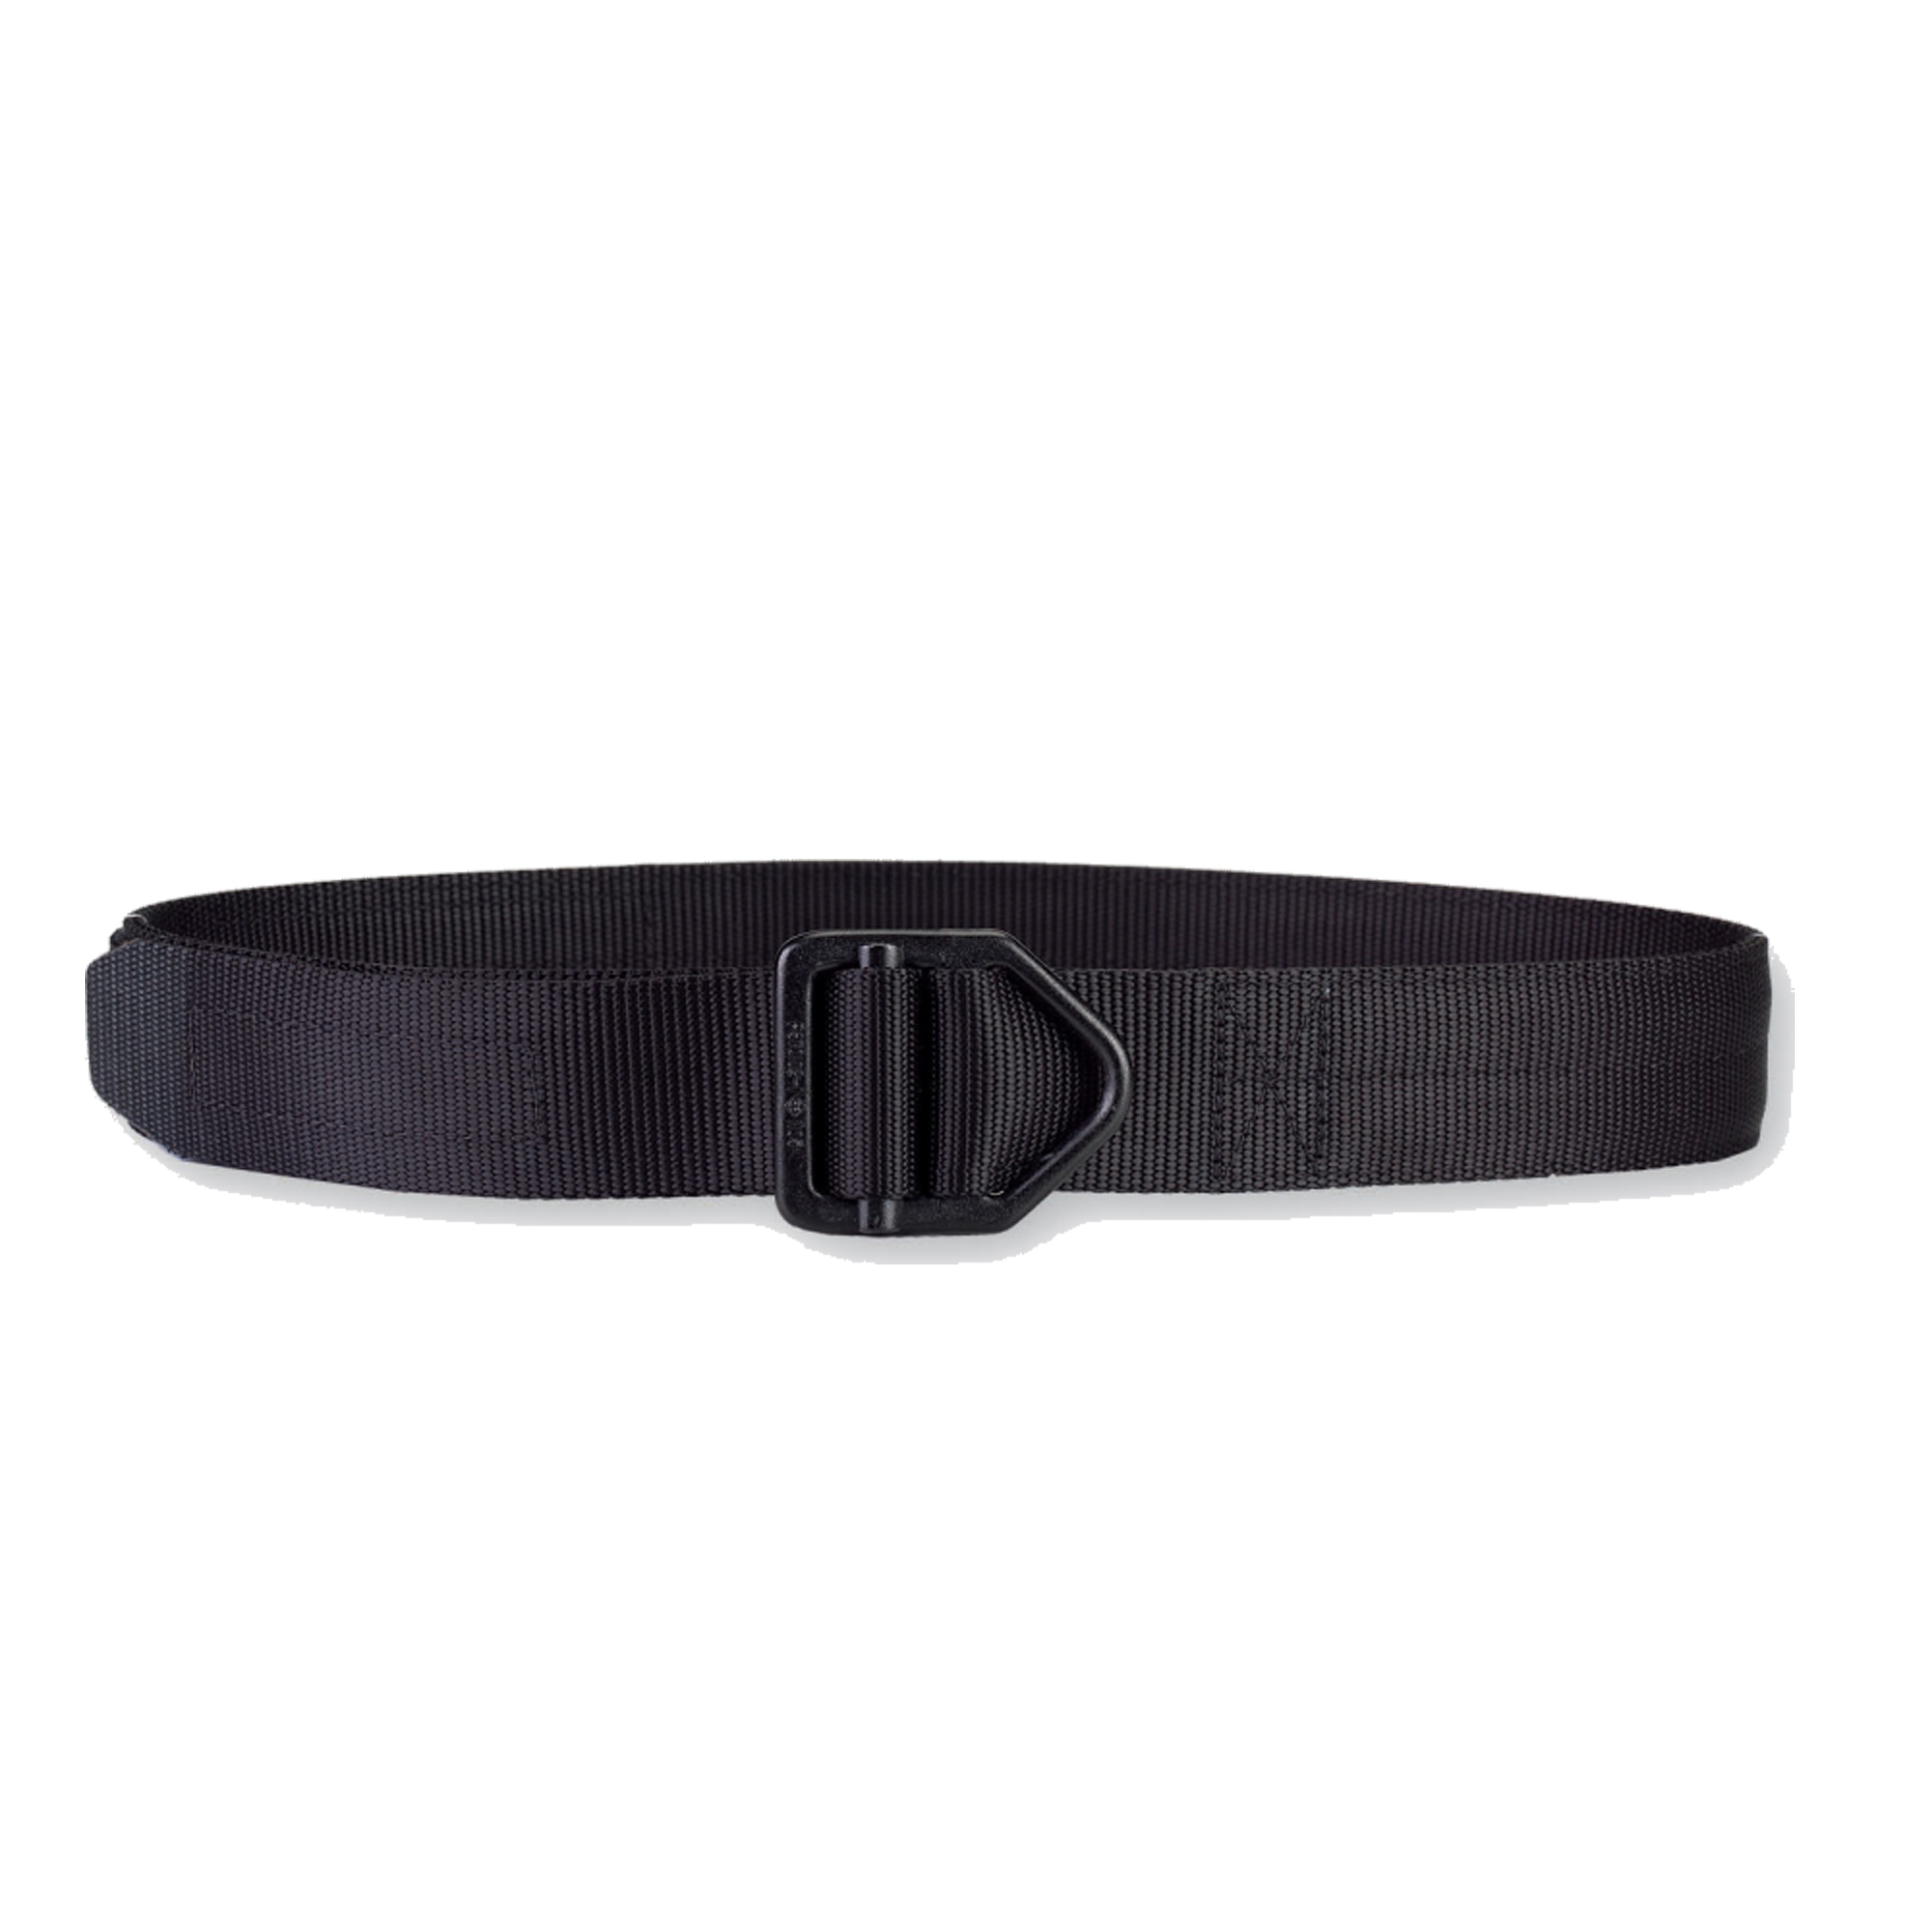 "Galco Instructor Belt 1 1/2"" Blk Xxl"